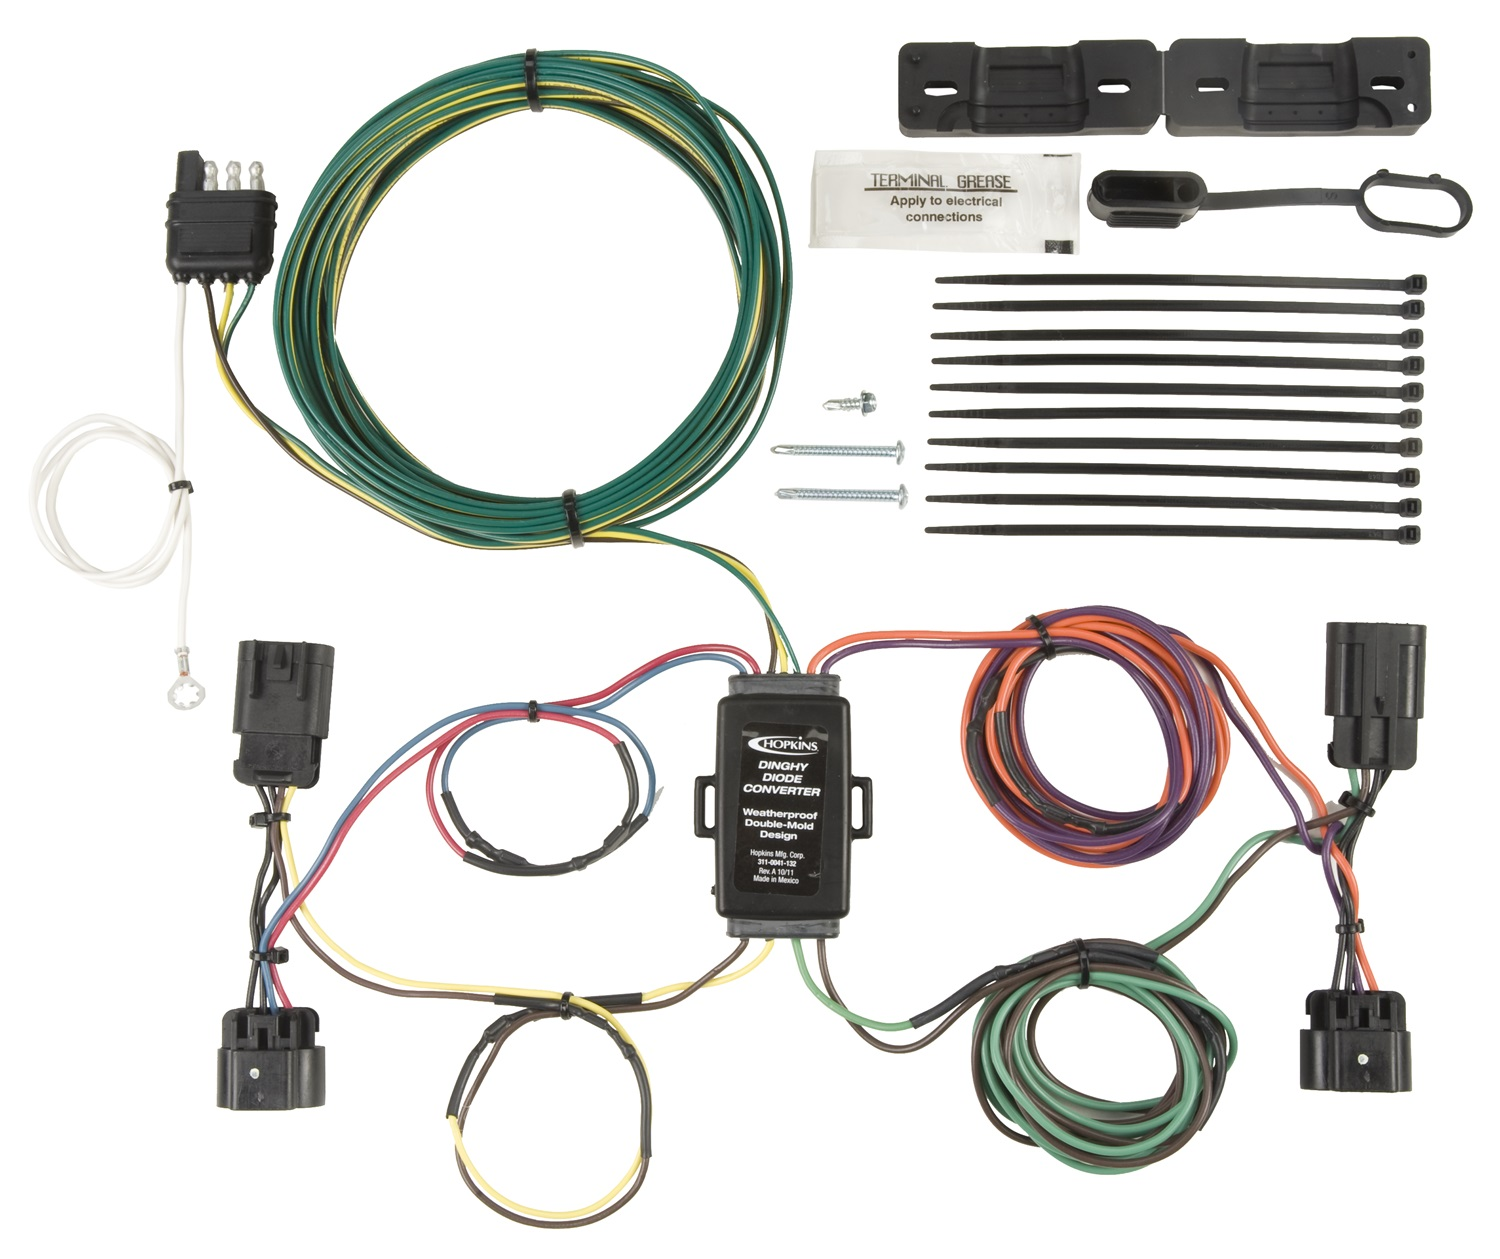 Towed Vehicle Wiring Harness Guide And Troubleshooting Of Vehicles Diagram Todays Rh 1 3 9 1813weddingbarn Com Tow Ready T1